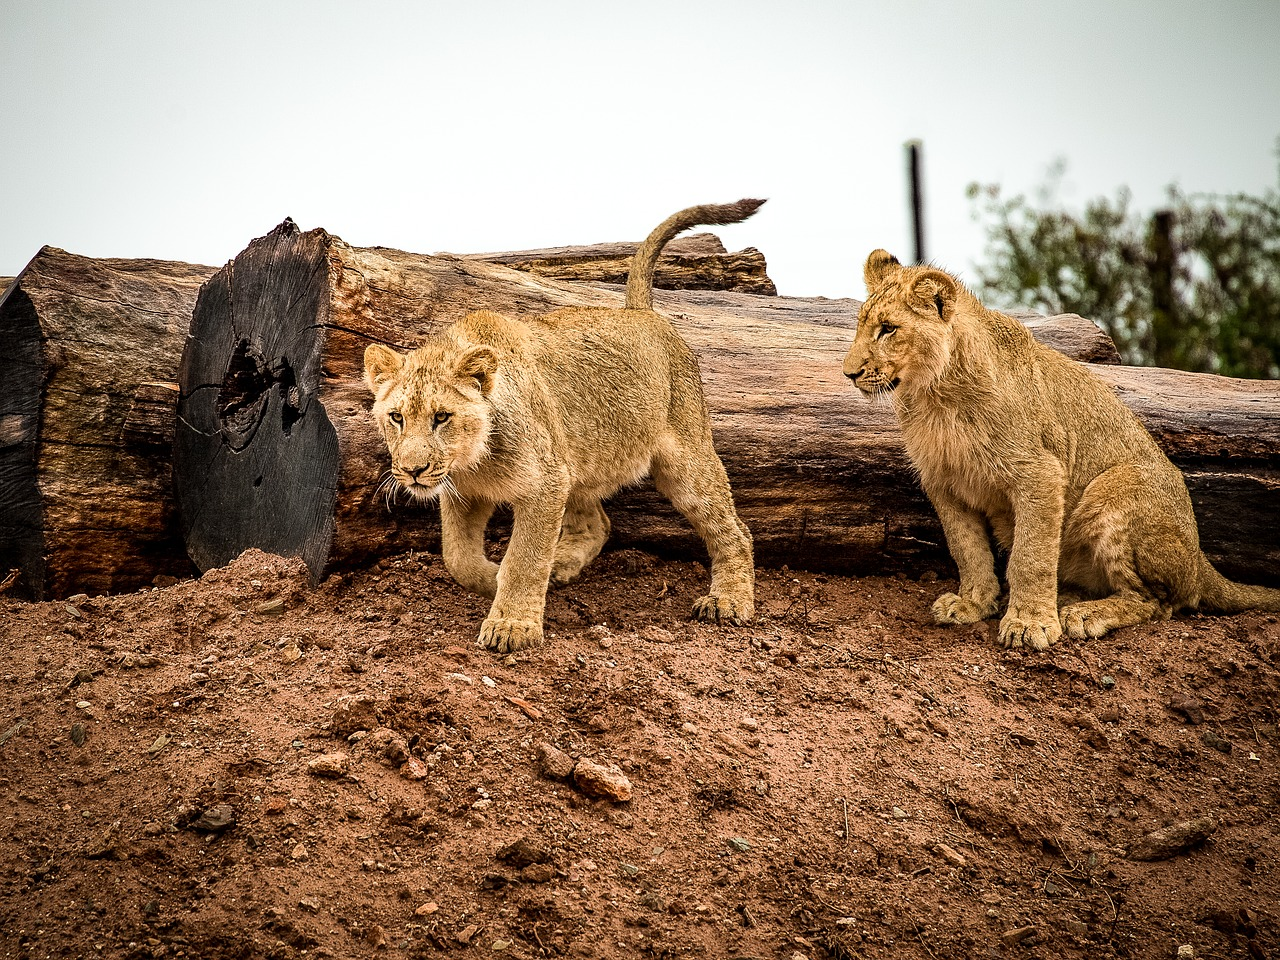 Lions are often hunted illegally in South Africa for their valuable bones and pelts.